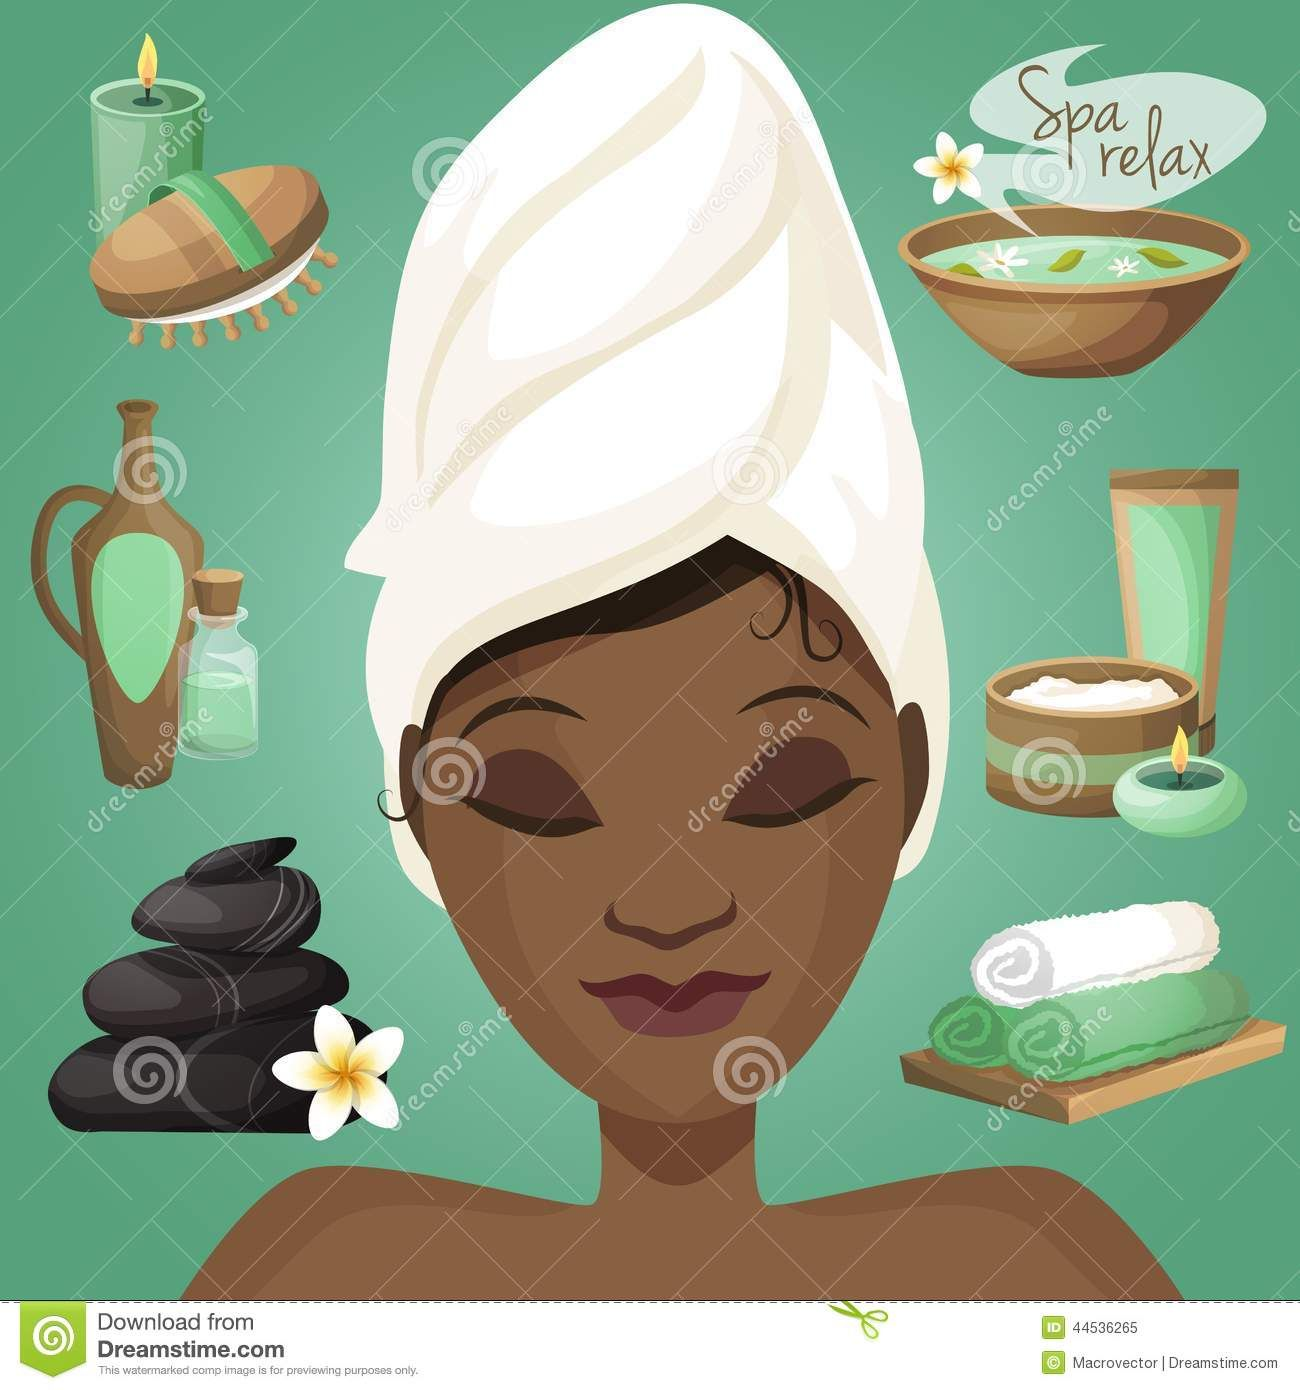 Black Woman Spa Healthcare Salon Wellness Icons Beautiful Face Vector Illustration 44536265 Jpg 1300 1390 Black Love Art Black Women Vector Illustration